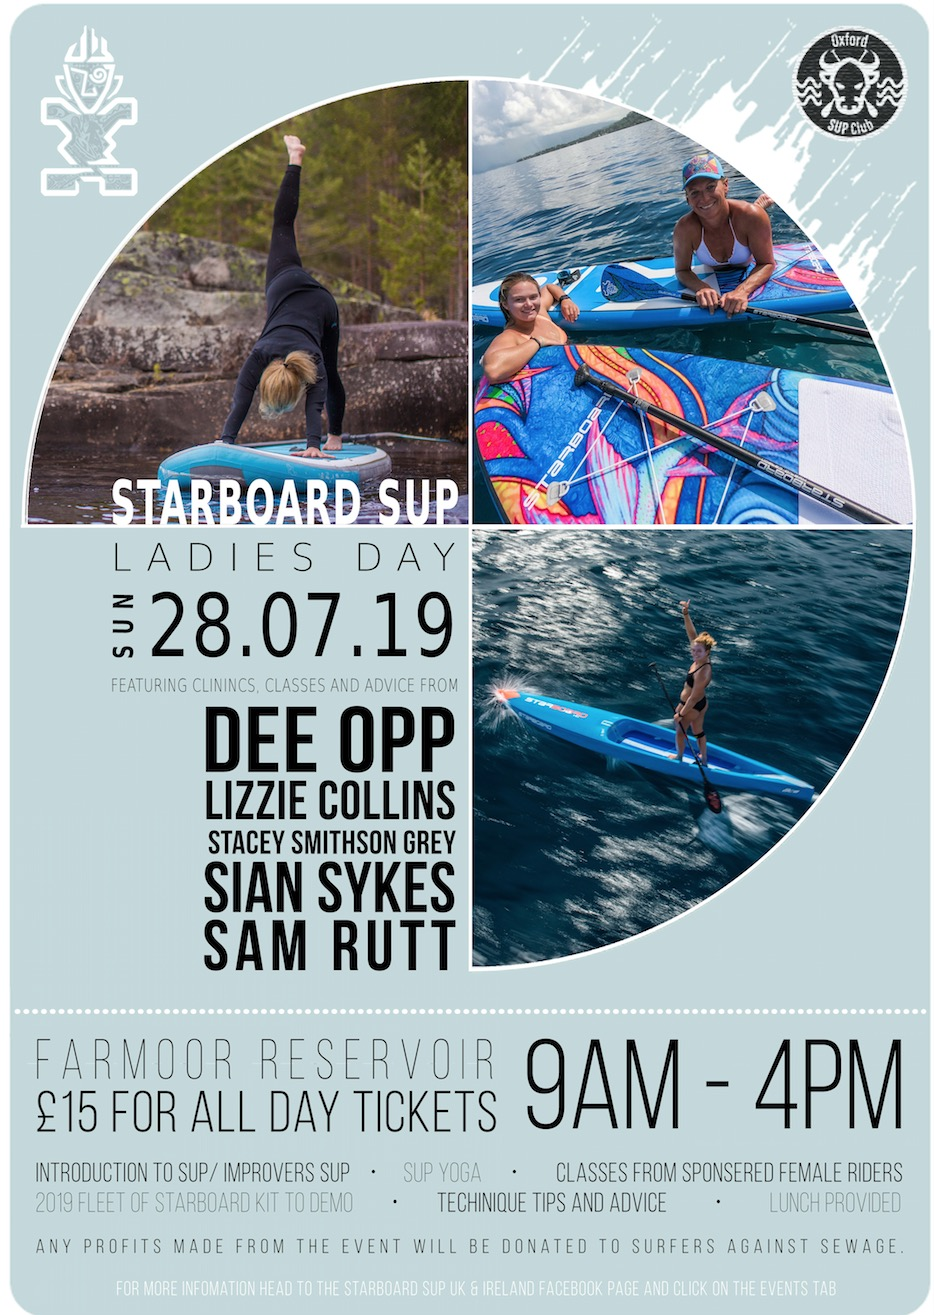 Starboard SUP Ladies Day